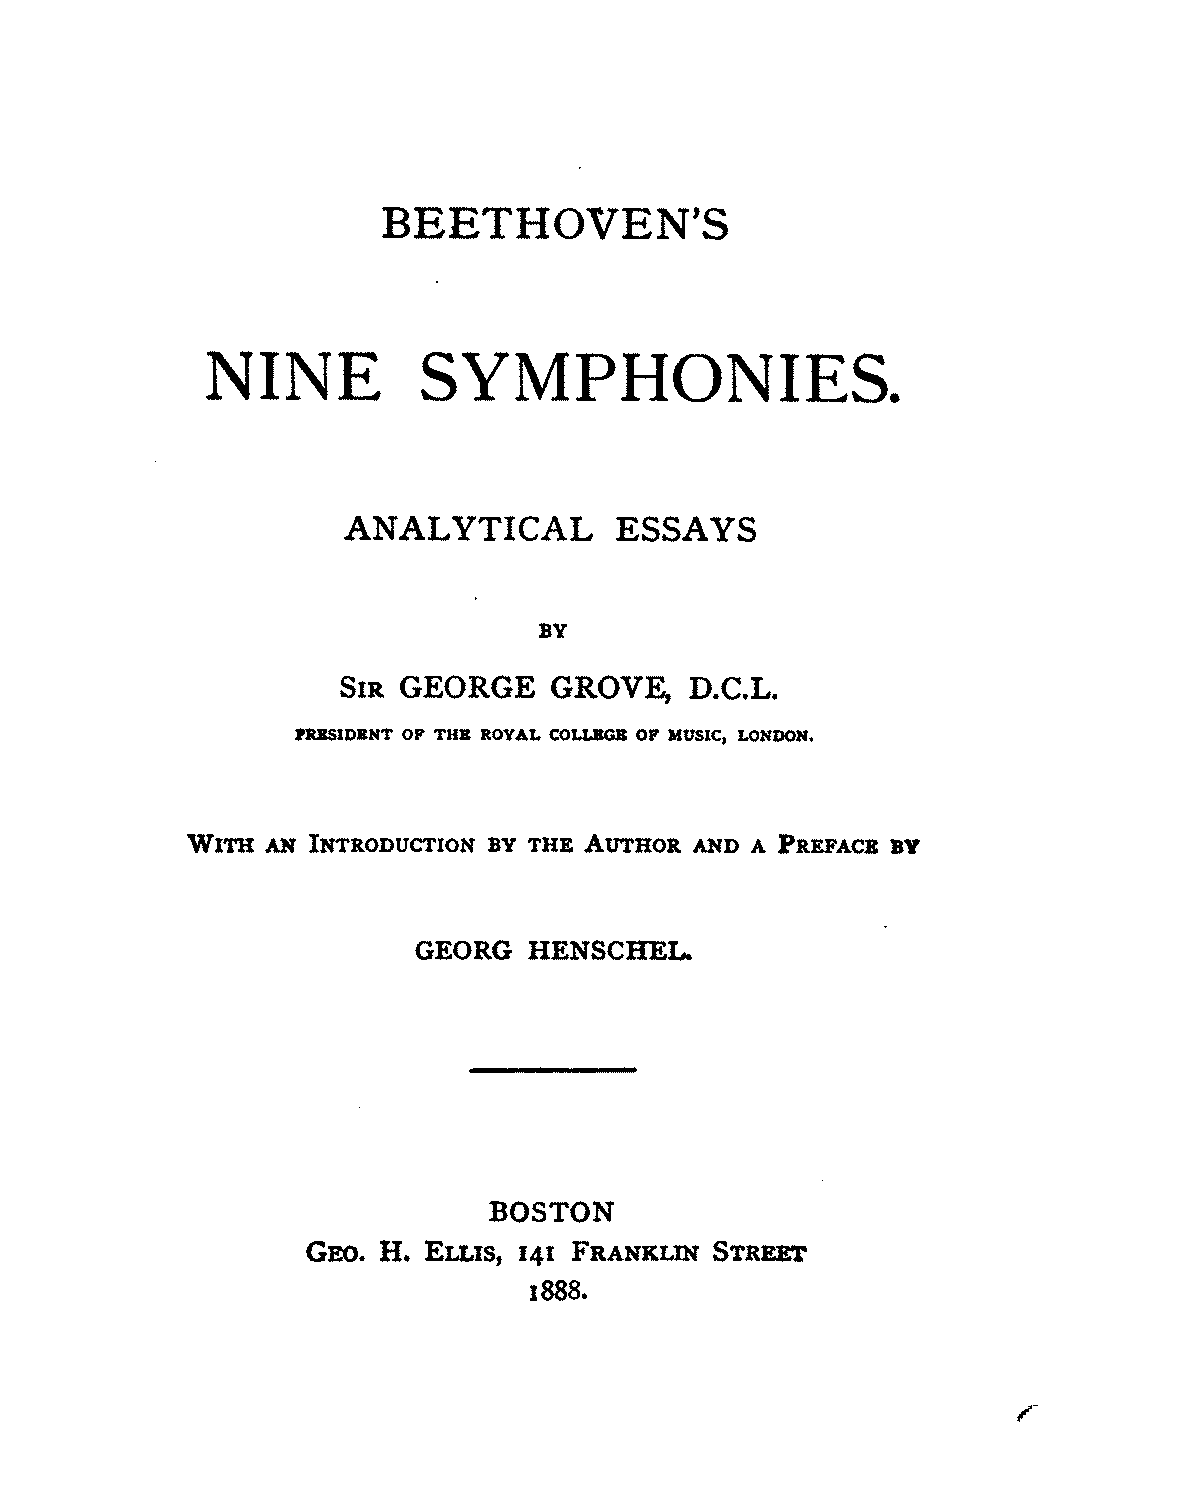 beethoven s nine symphonies analytical essays grove george javascript